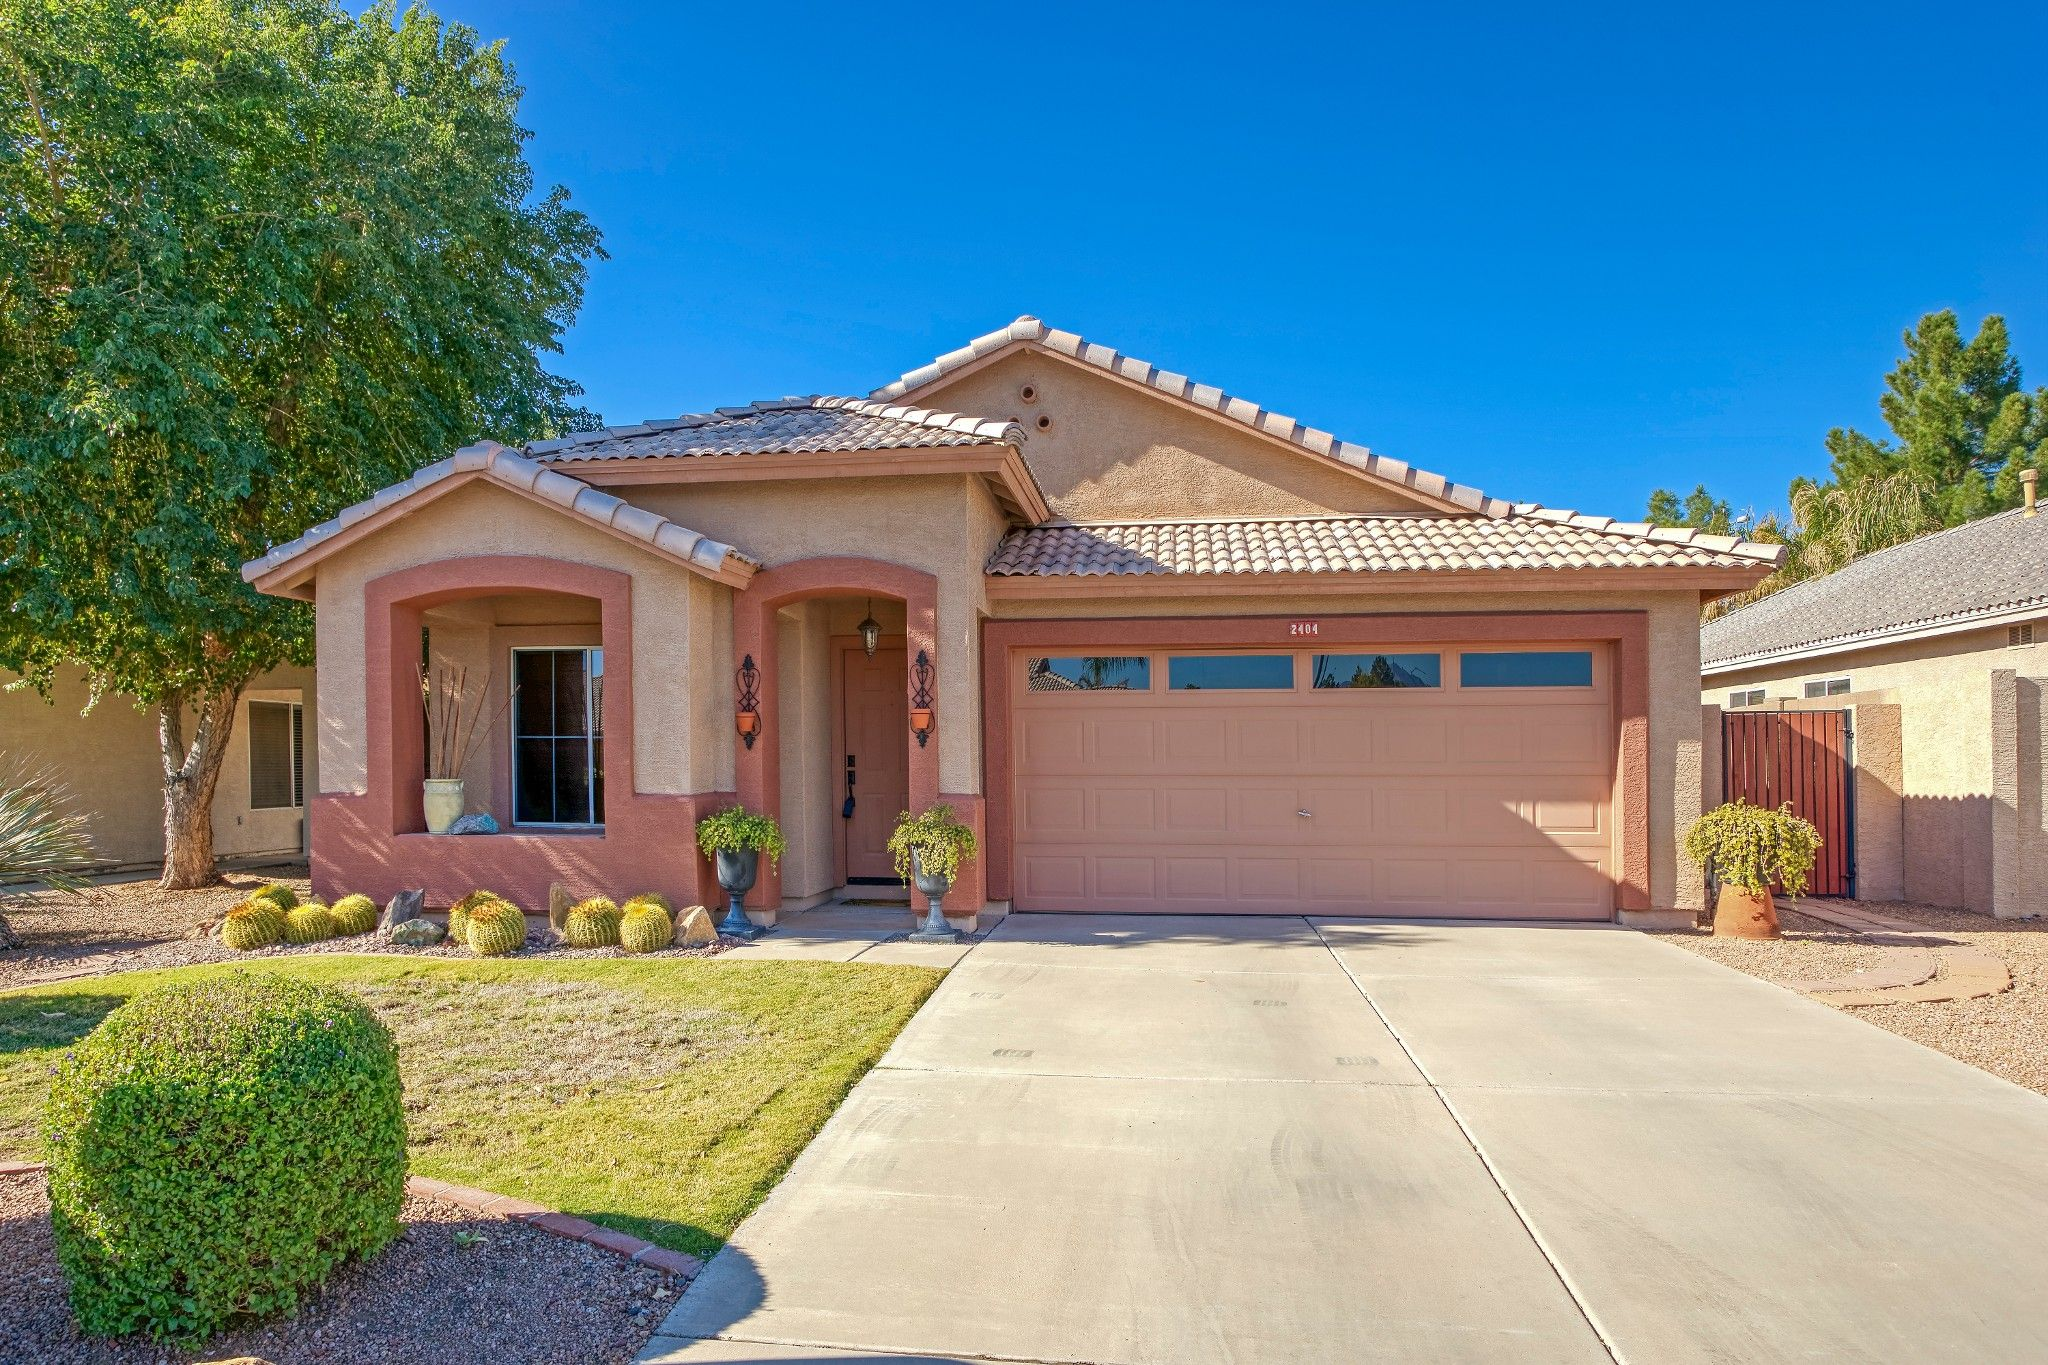 Main Photo: 2404 S Bernard in Mesa: Augusta Ranch House for sale (East Valley)  : MLS®# 6167737